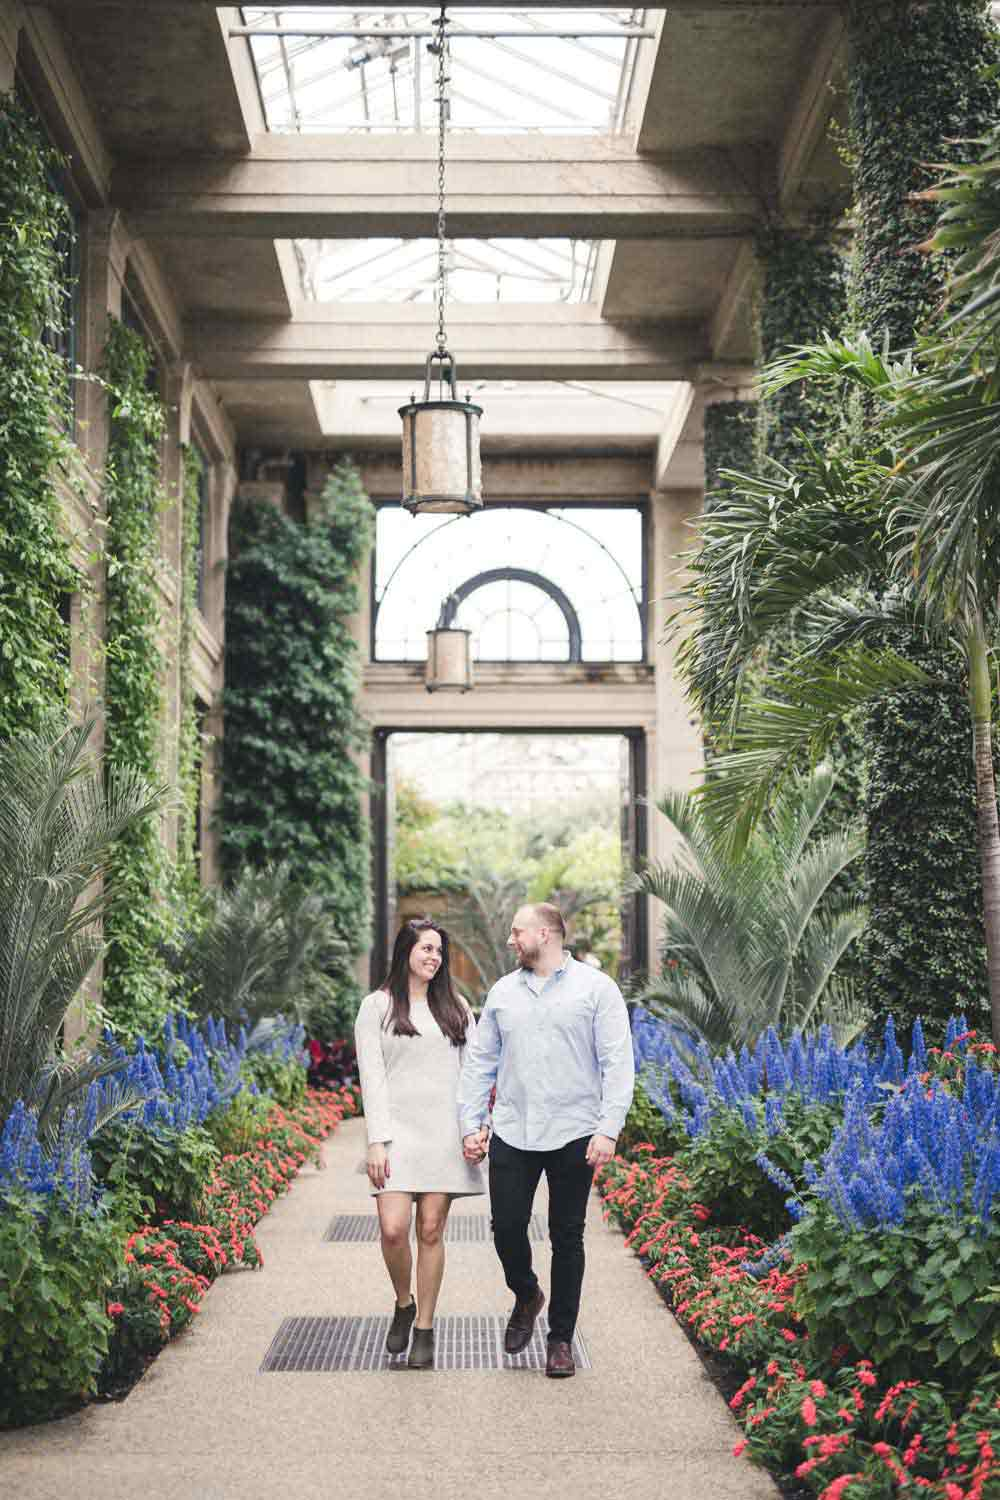 Longwood Gardens Engagement Photos with couple walking down path surrounded by flora